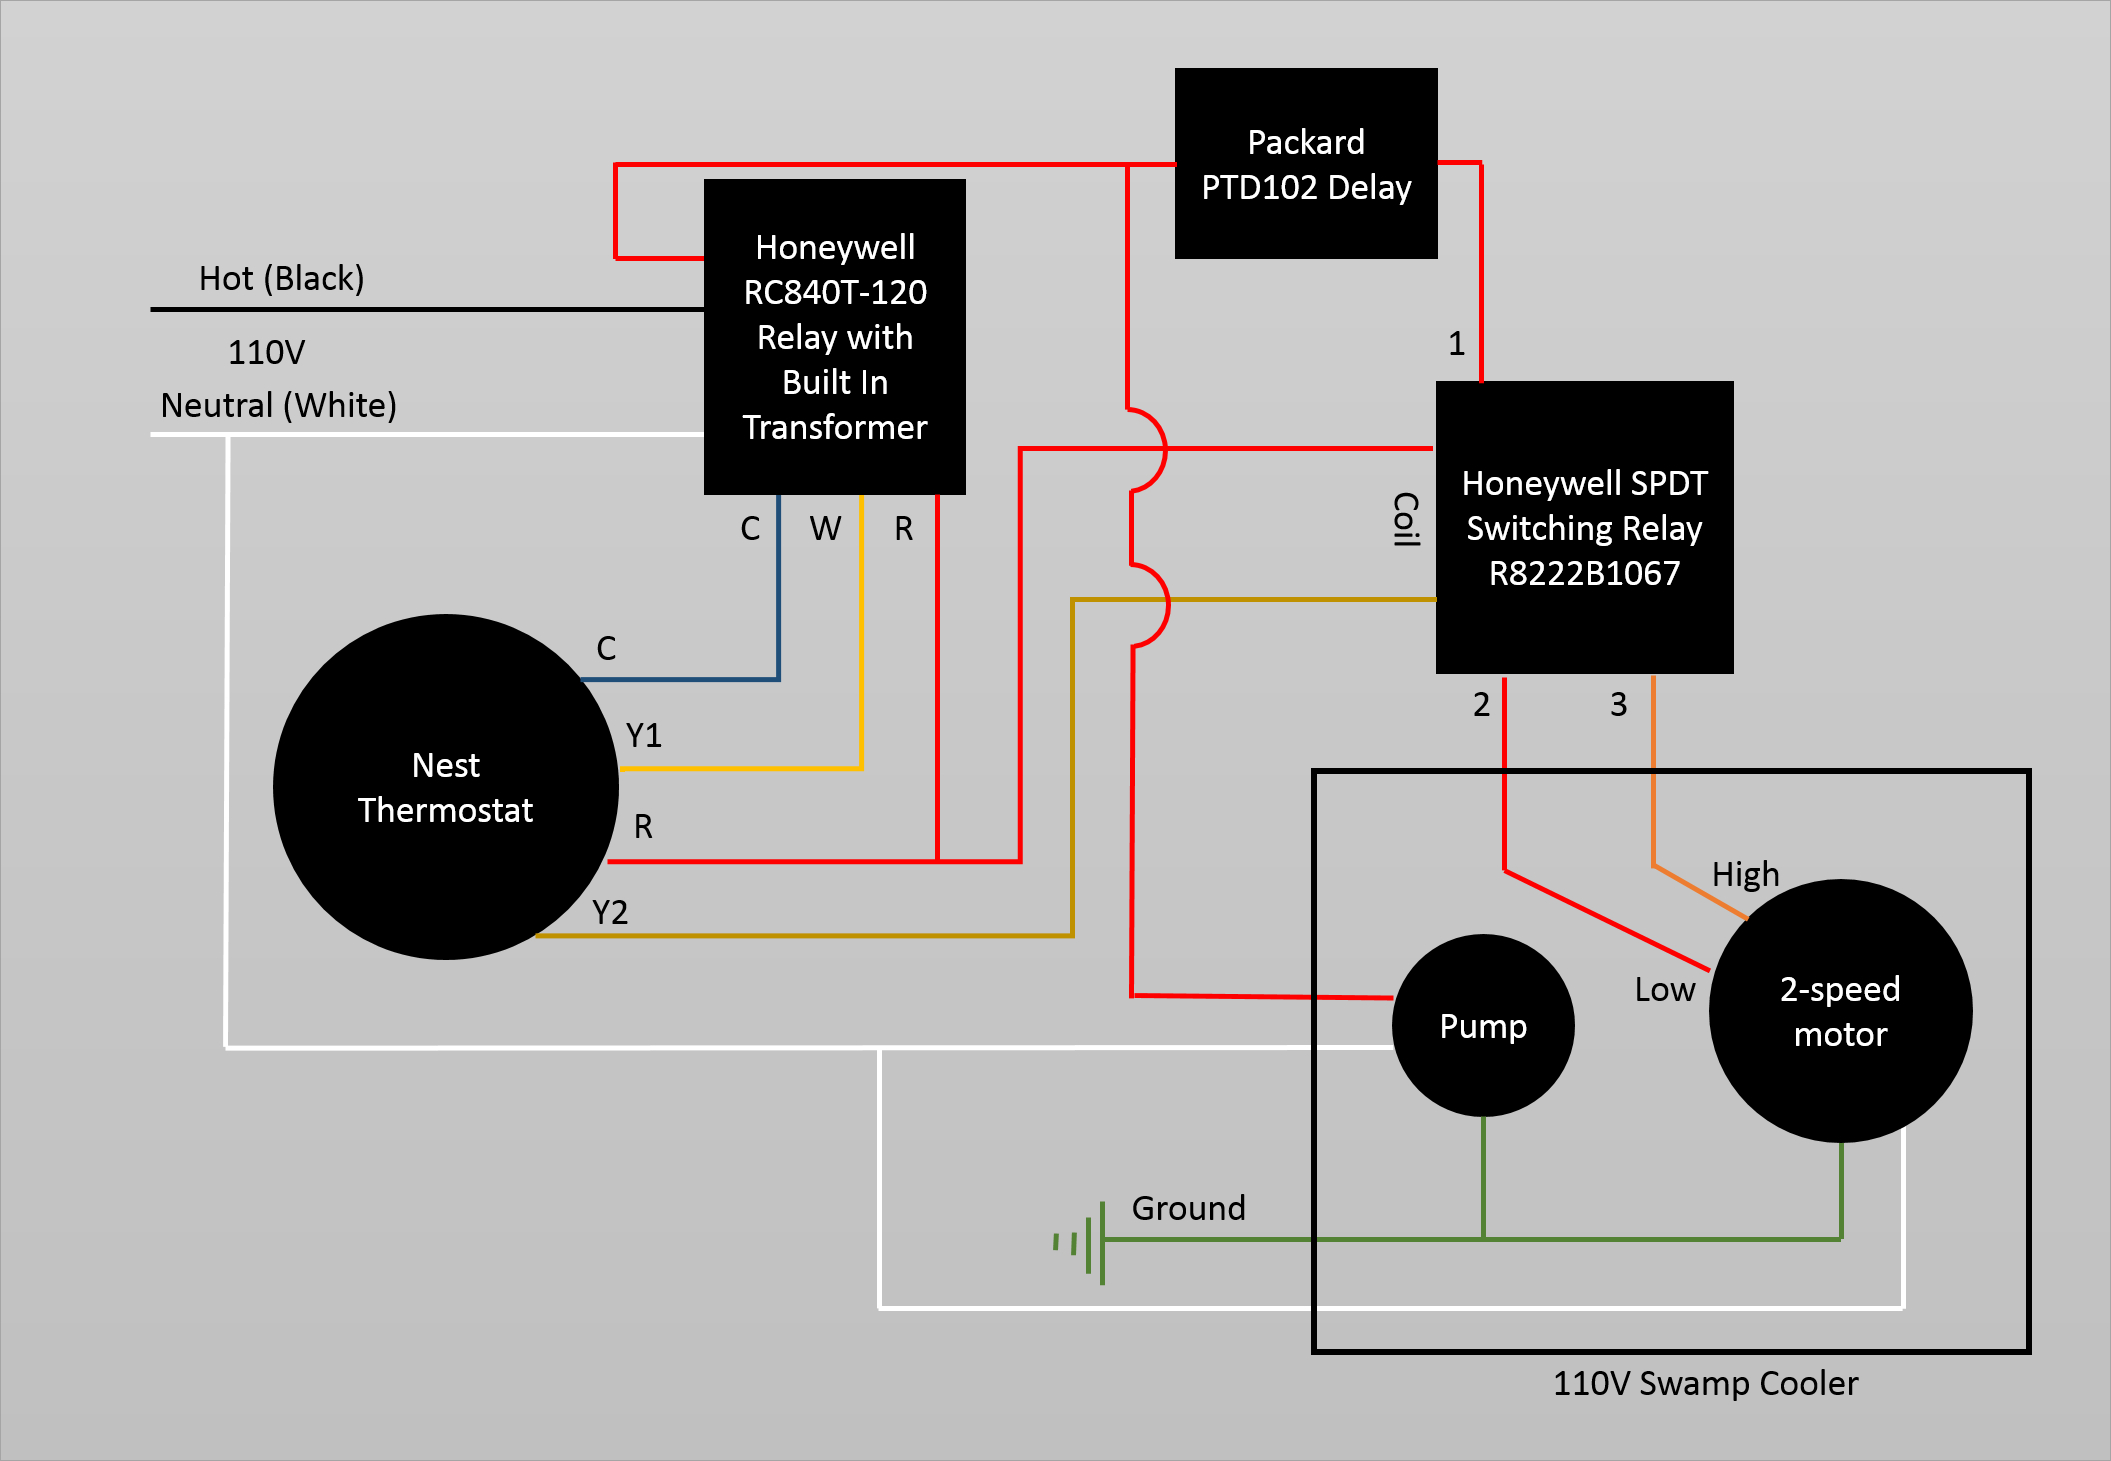 Wiring - Controlling 110V Swamp Cooler Using Nest Thermostat - Home - Nest Thermostat 2Nd Generation Heat Pump Wiring Diagram